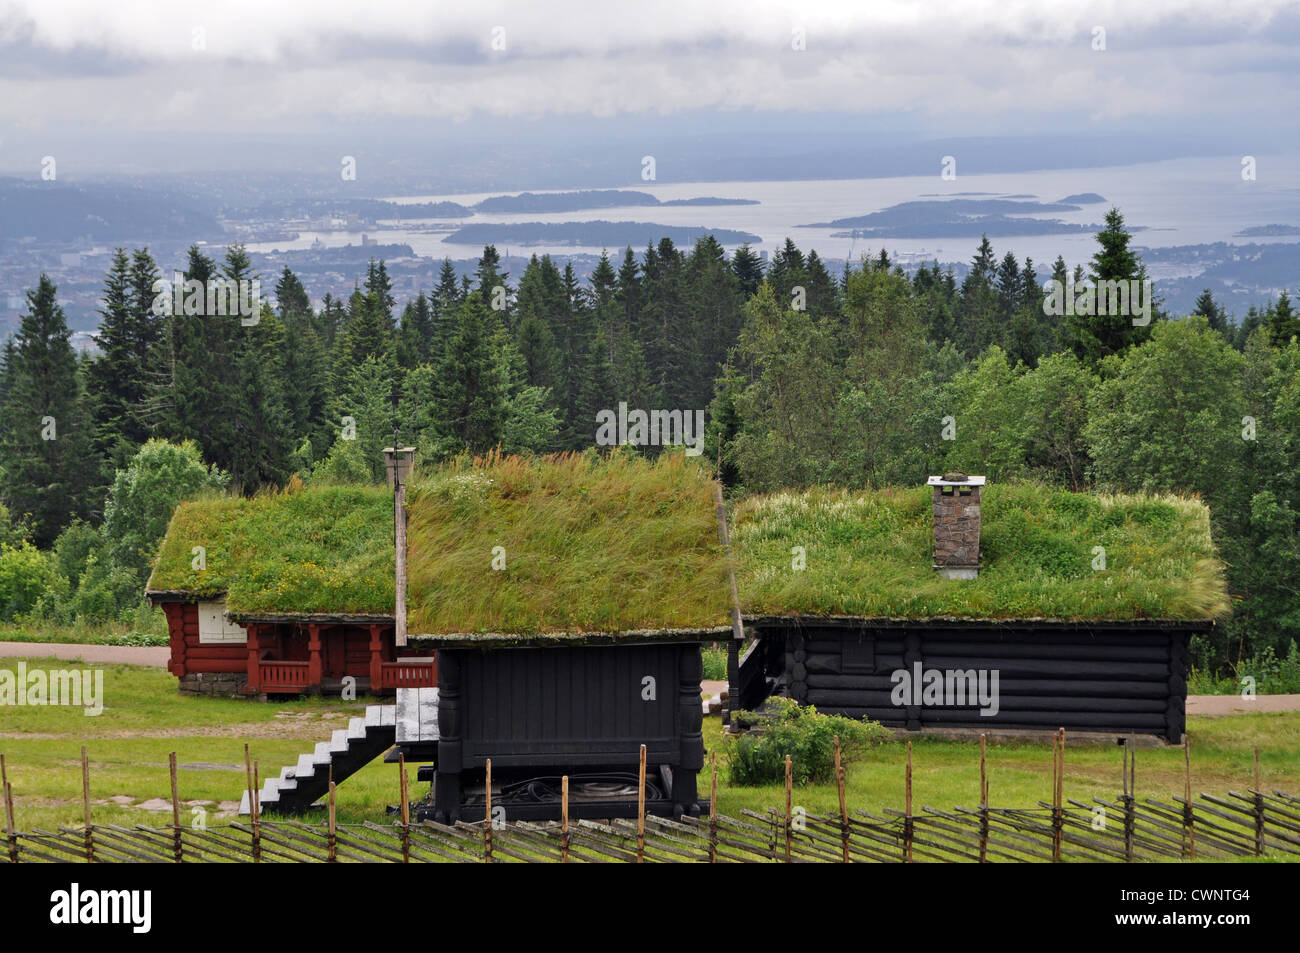 Sod roofs on buildings at Frogneseteren, near Oslo, Norway - Stock Image